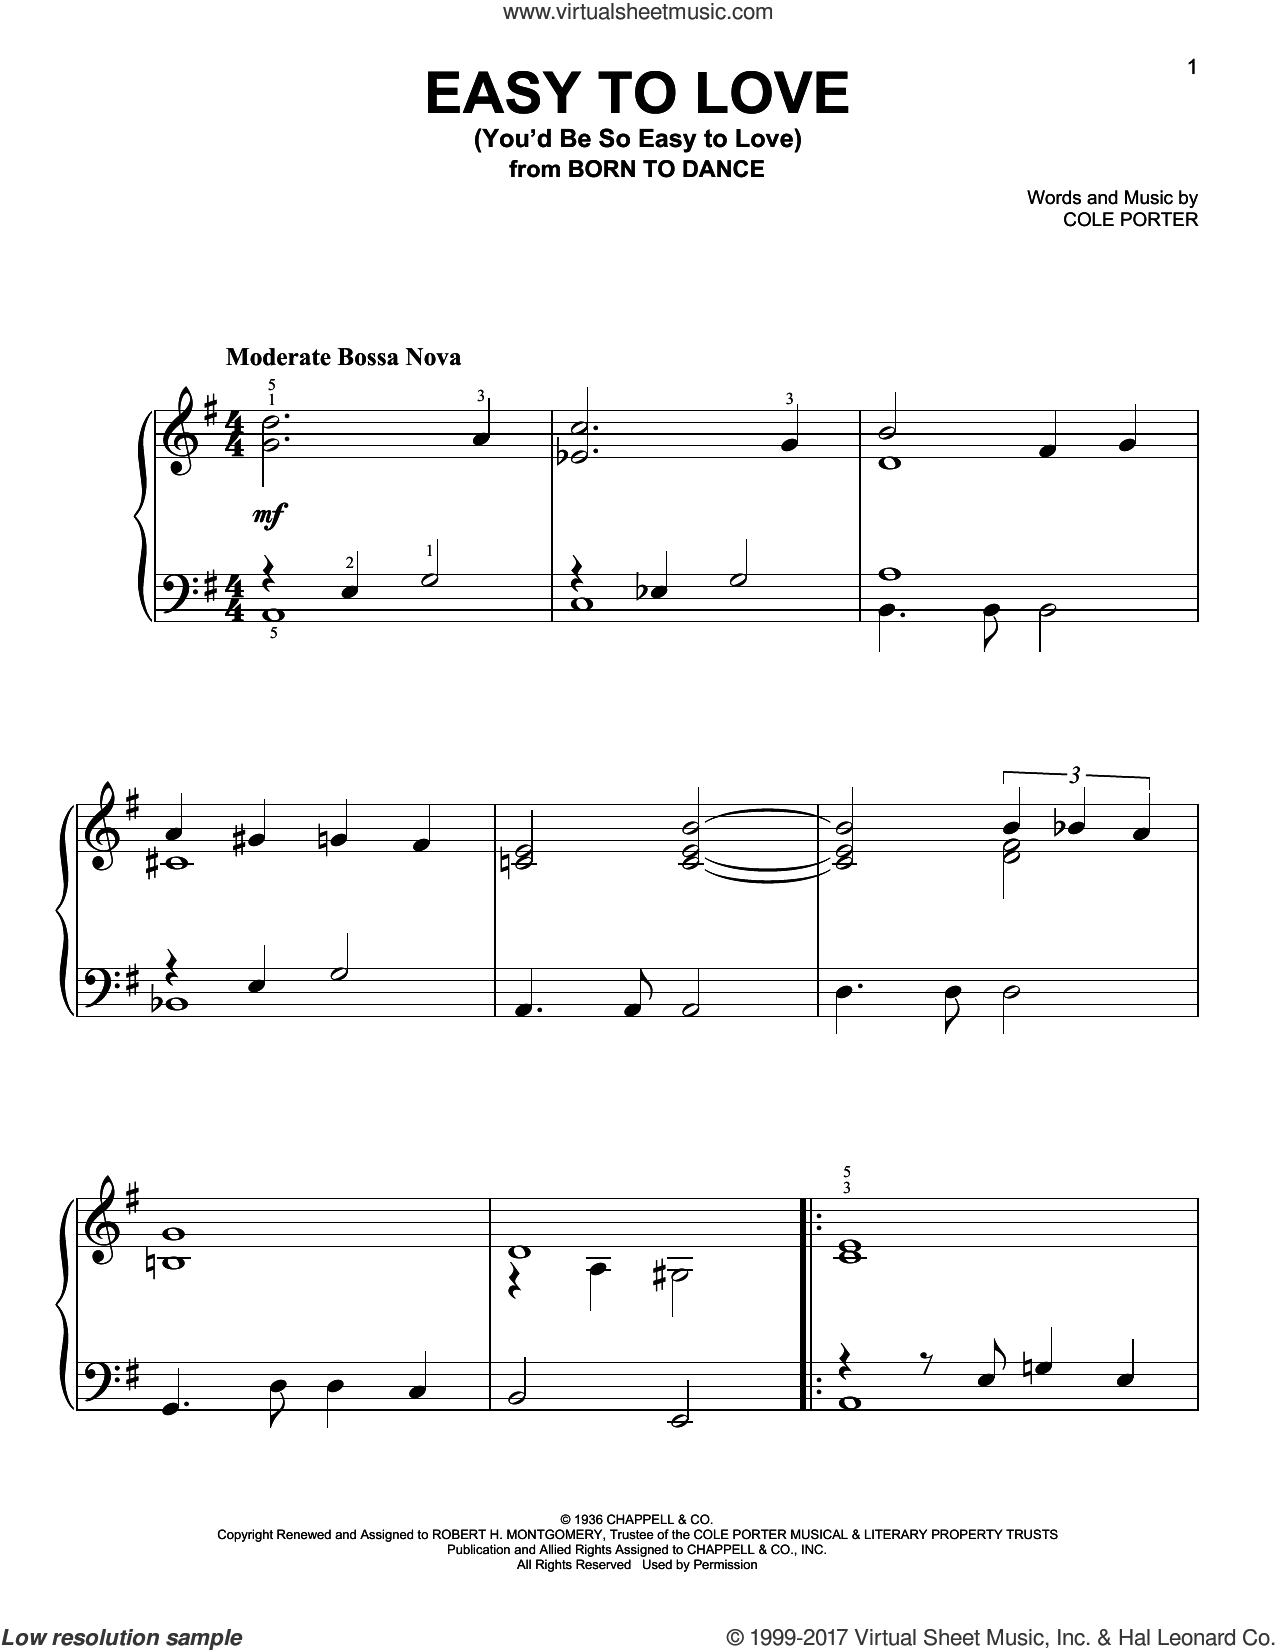 Easy To Love (You'd Be So Easy To Love) sheet music for piano solo by Cole Porter, easy. Score Image Preview.